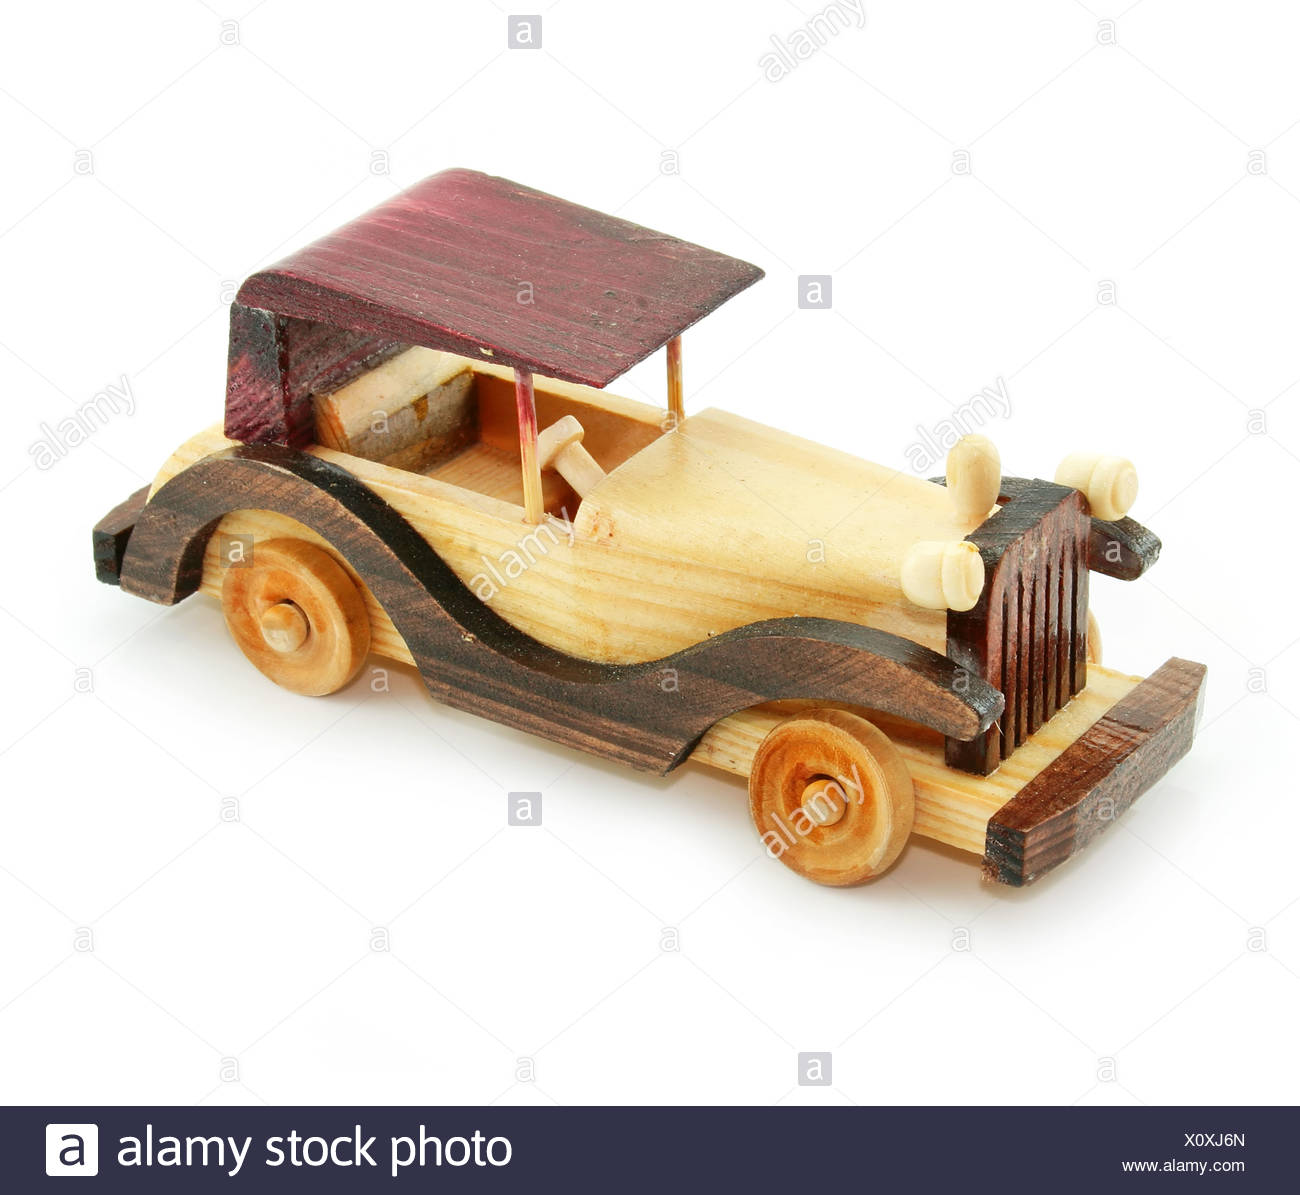 Retro car wooden model isolated - Stock Image